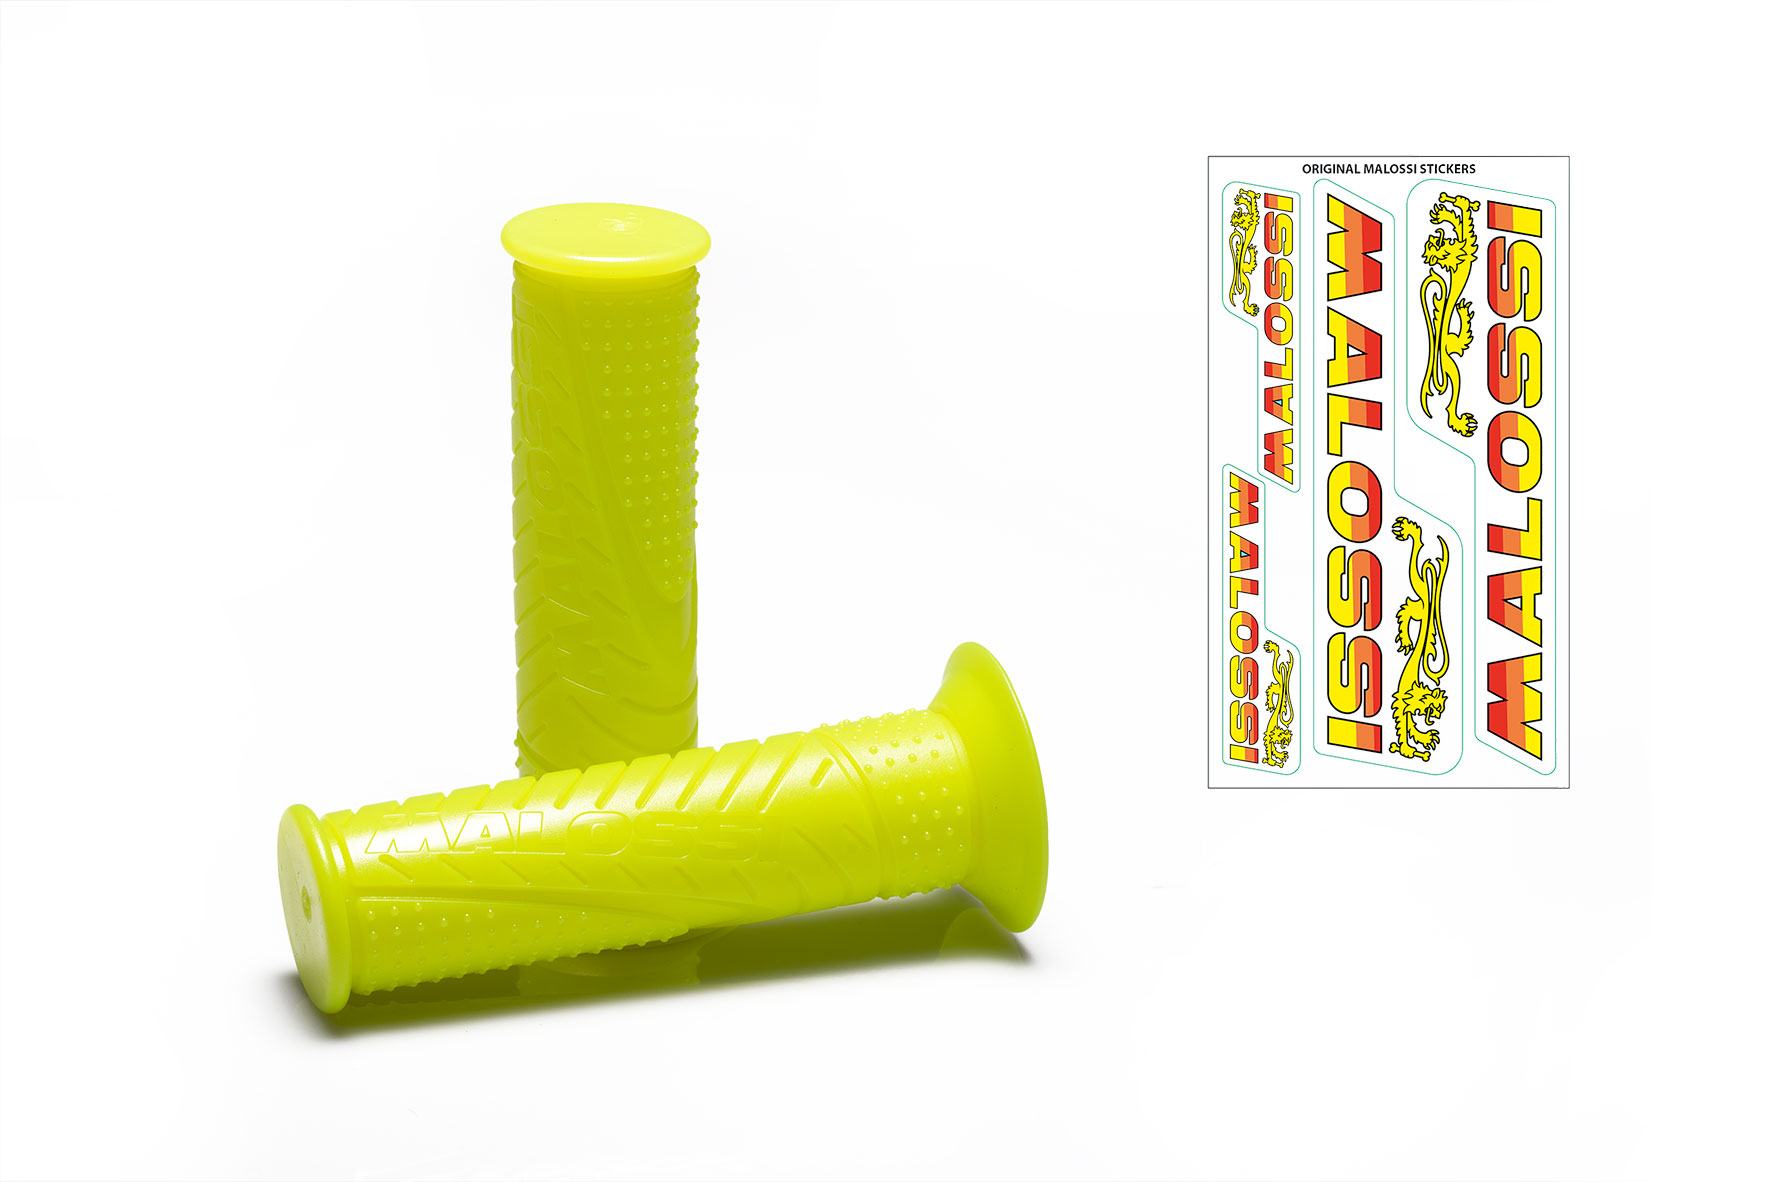 2 MALOSSI MHR FLUO YELLOW GRIPS (mod. with side fastening)